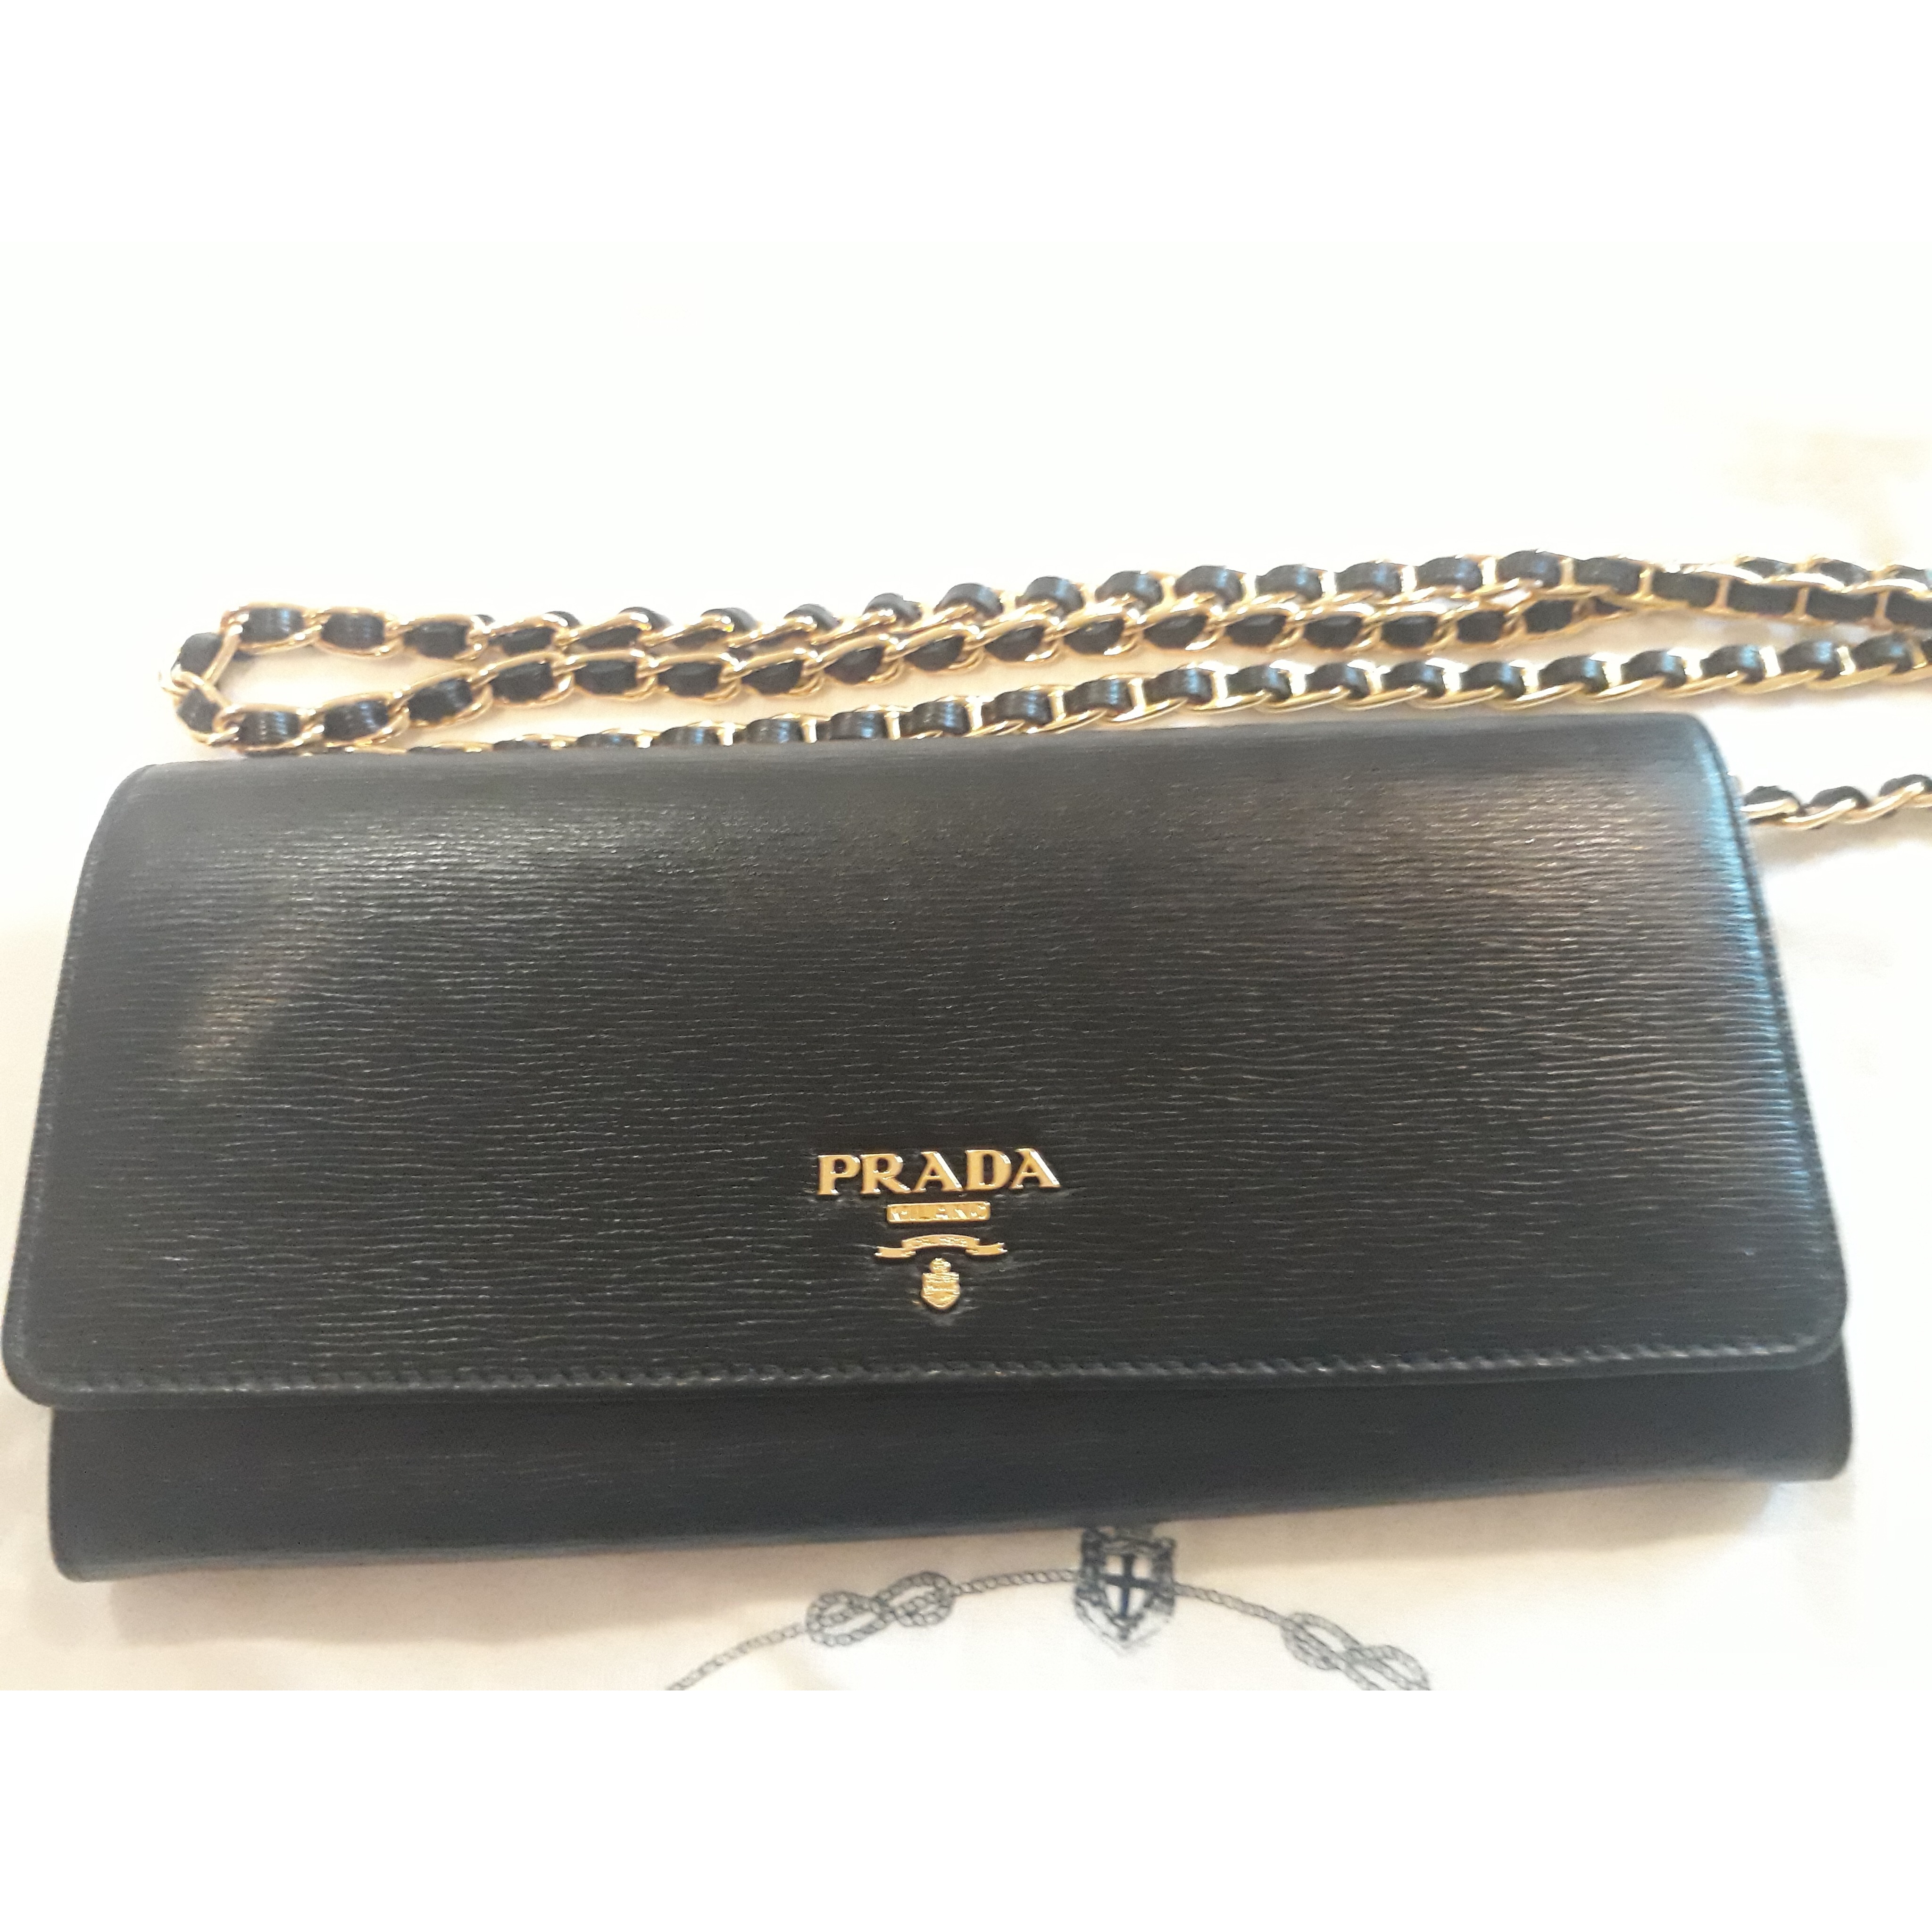 a962d0c4efa5 Prada wallet on chain - leather in black with gold hardware Measurements :  8.5